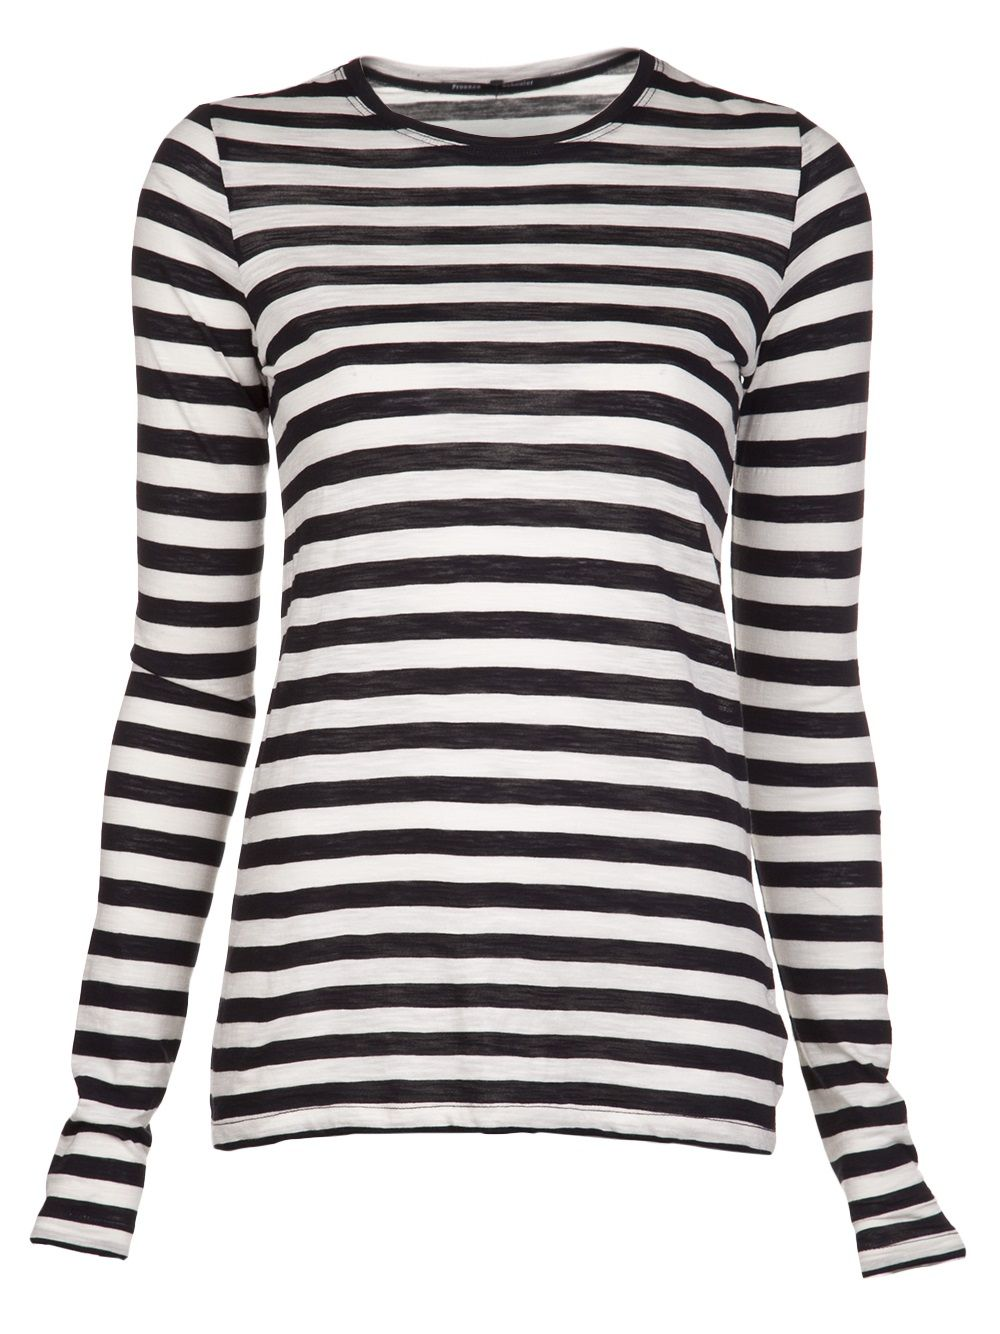 62948c482a1 black and white striped shirt womens. Blue White Striped Floral Embroidered Long  Sleeve ...